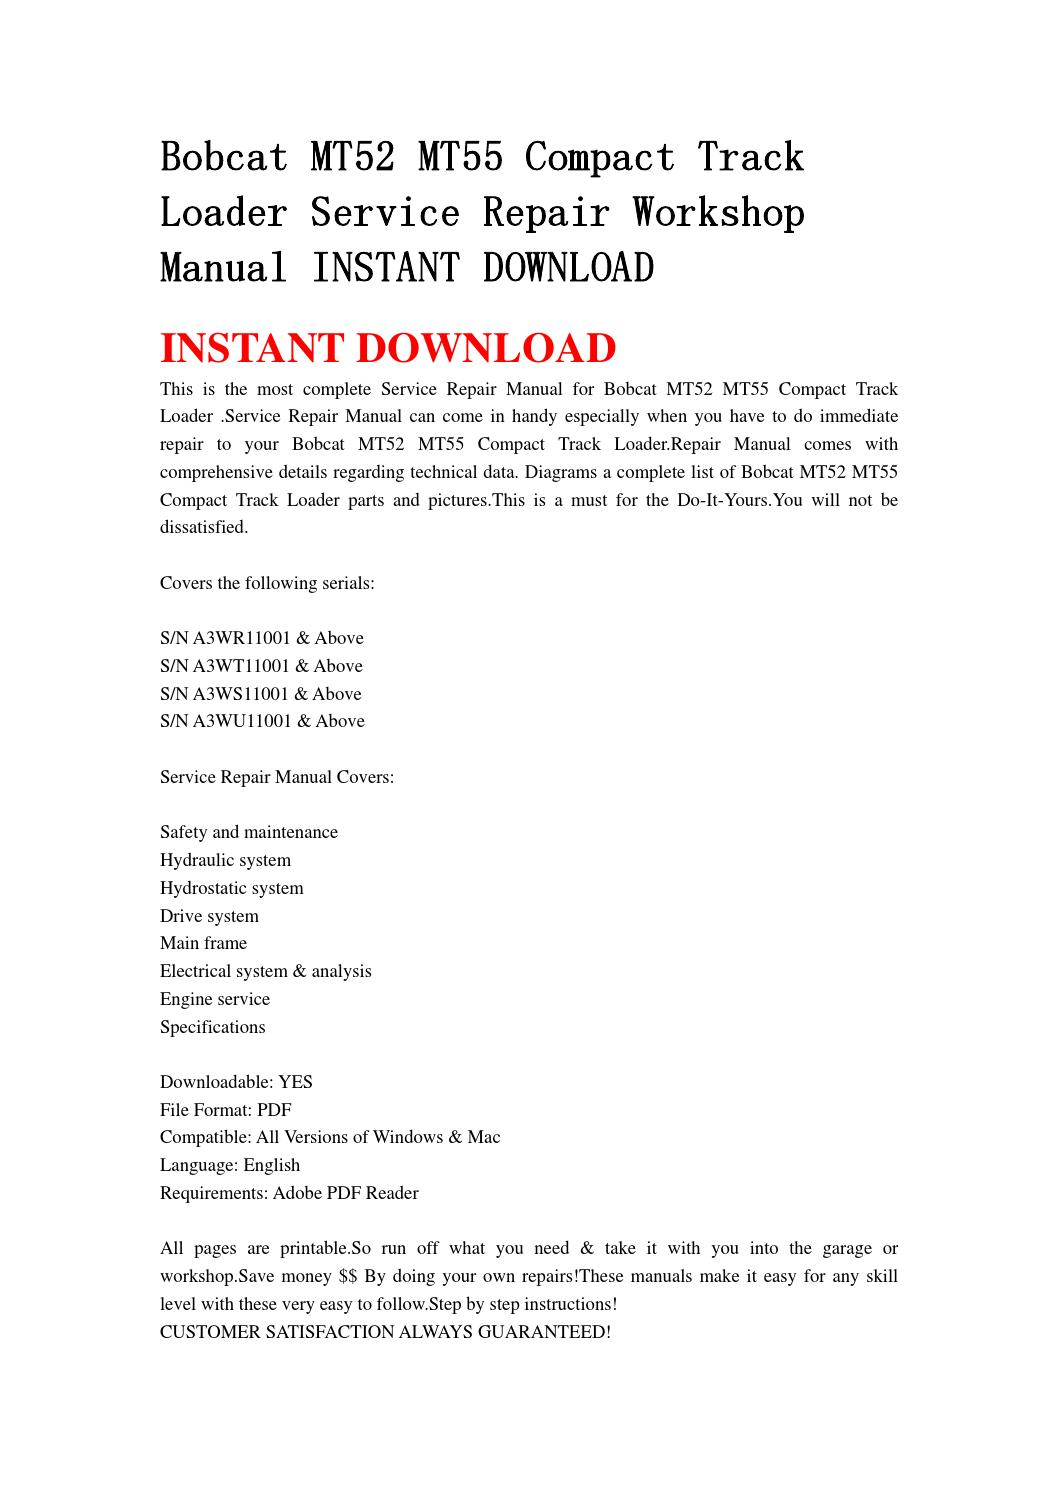 bobcat mt52 service manual pdf